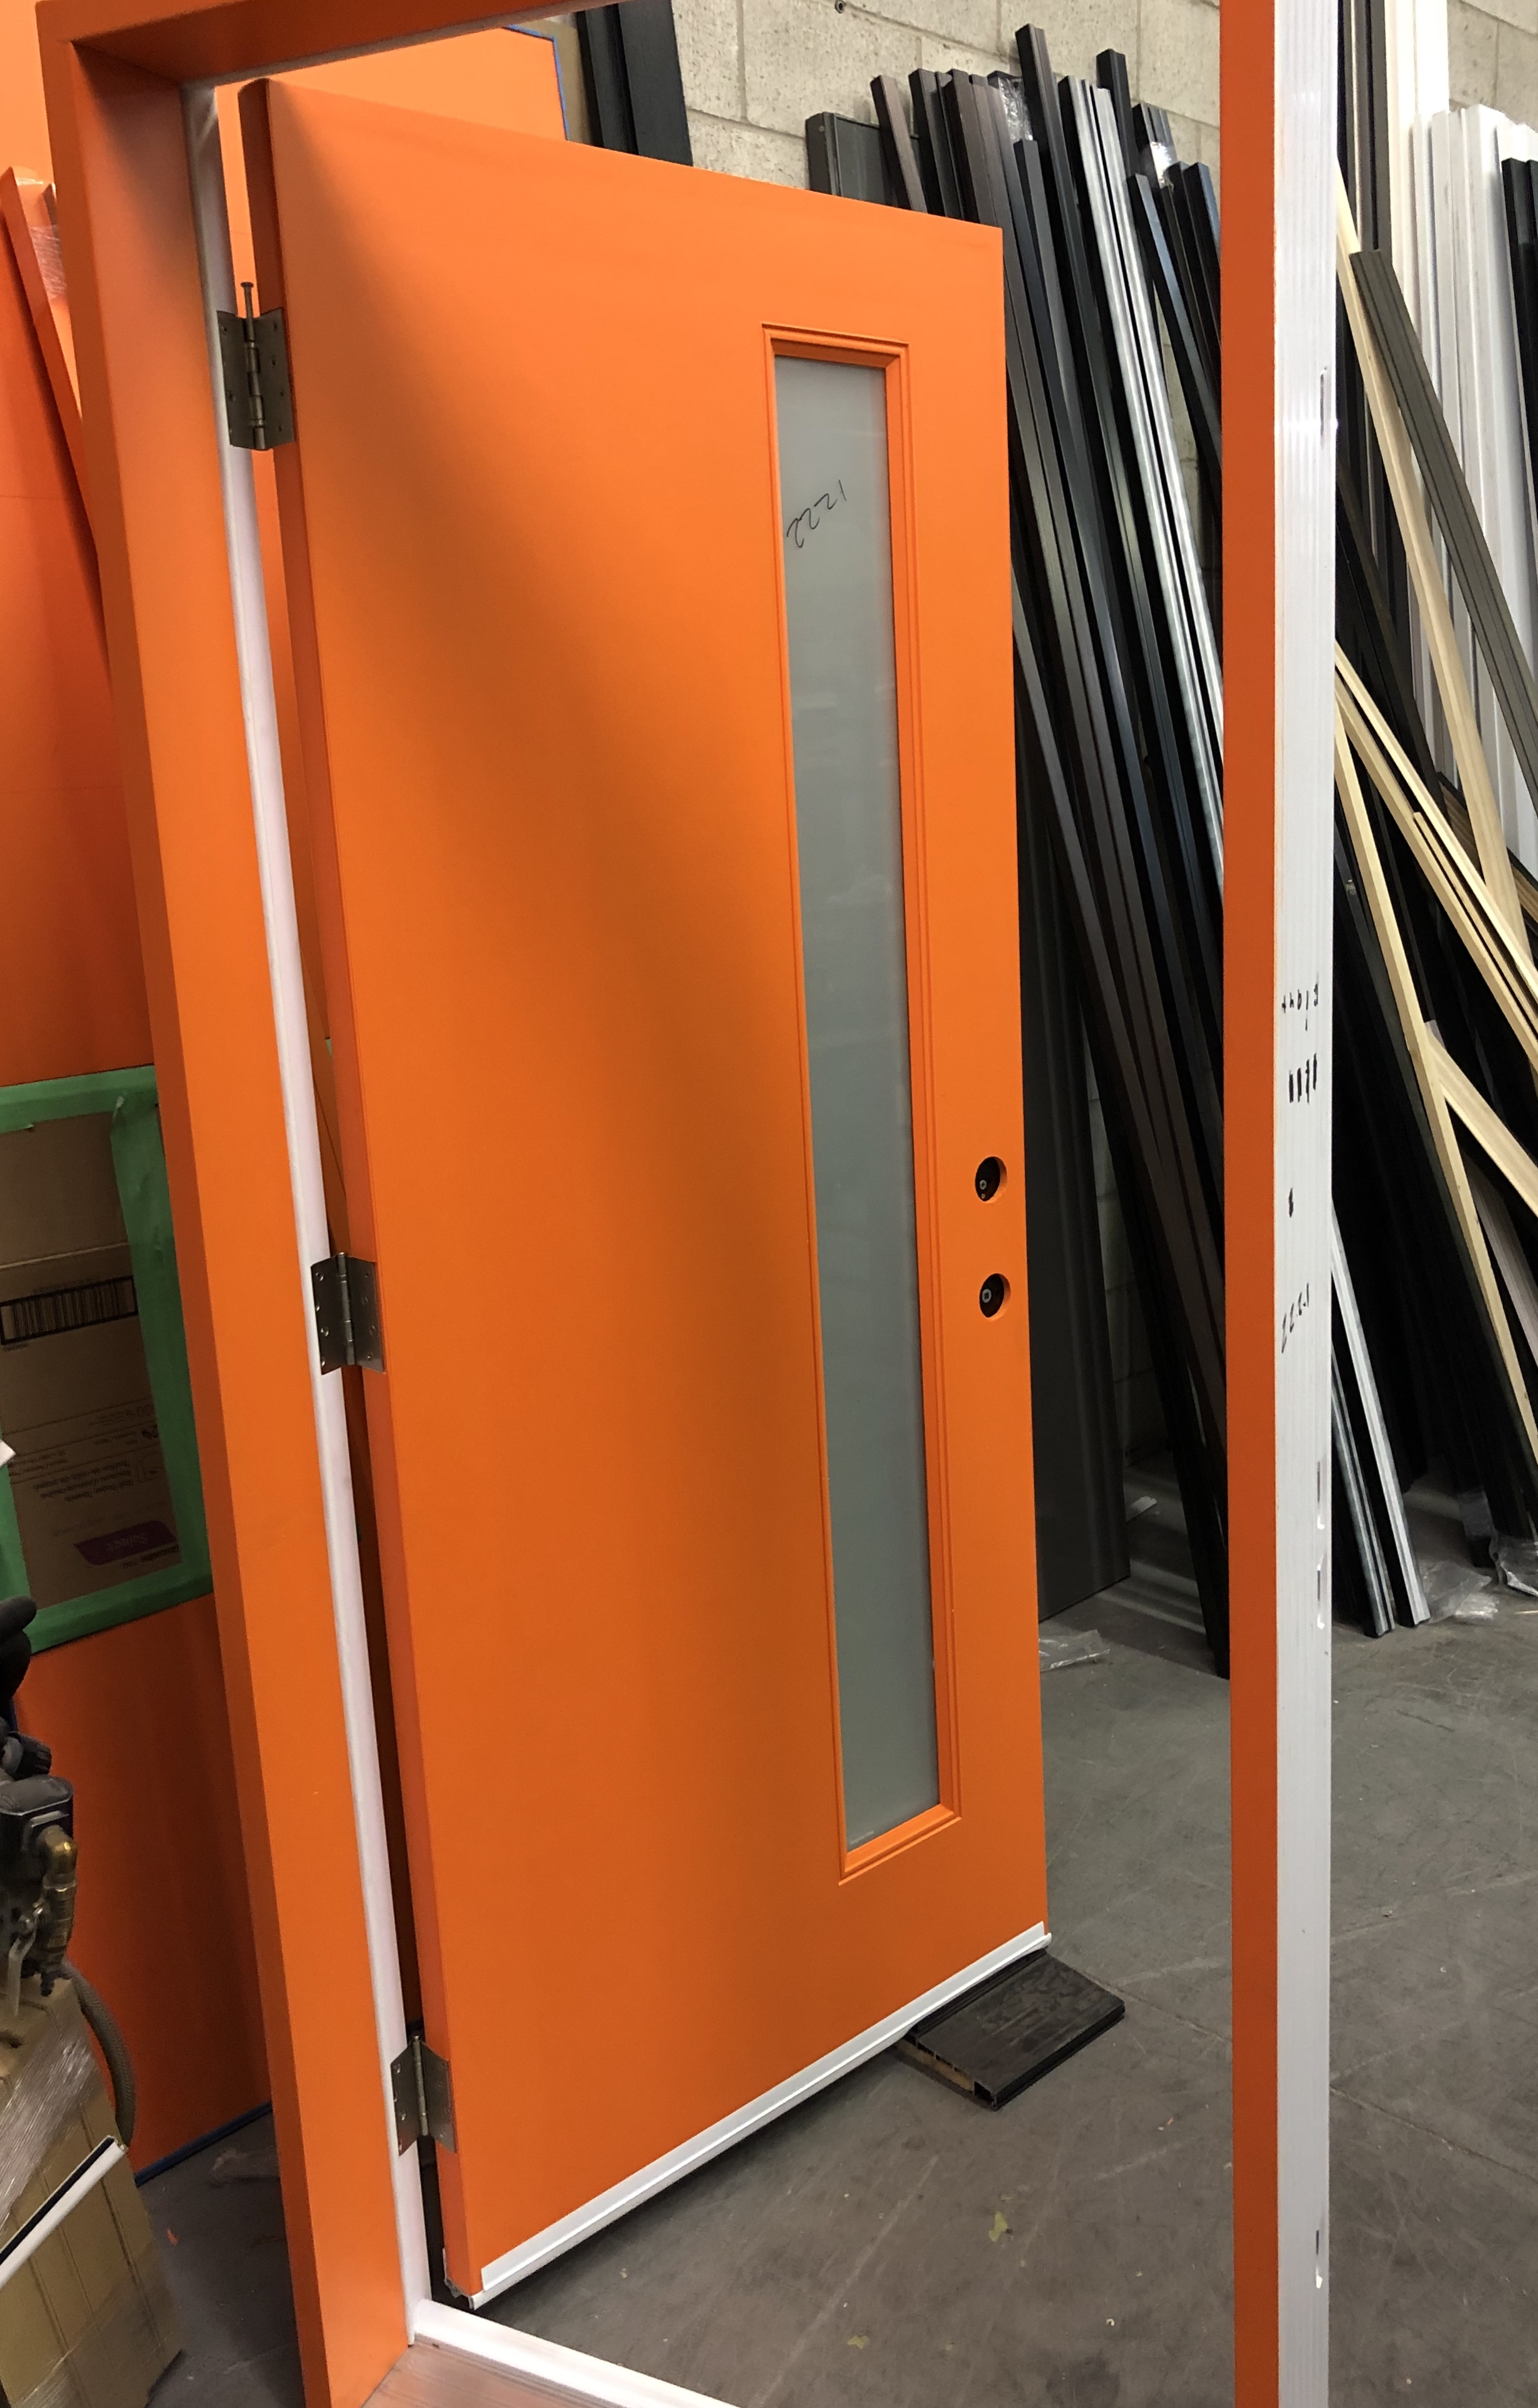 Rustic Fiberglass Modern Entry Doors With Stainless Steel